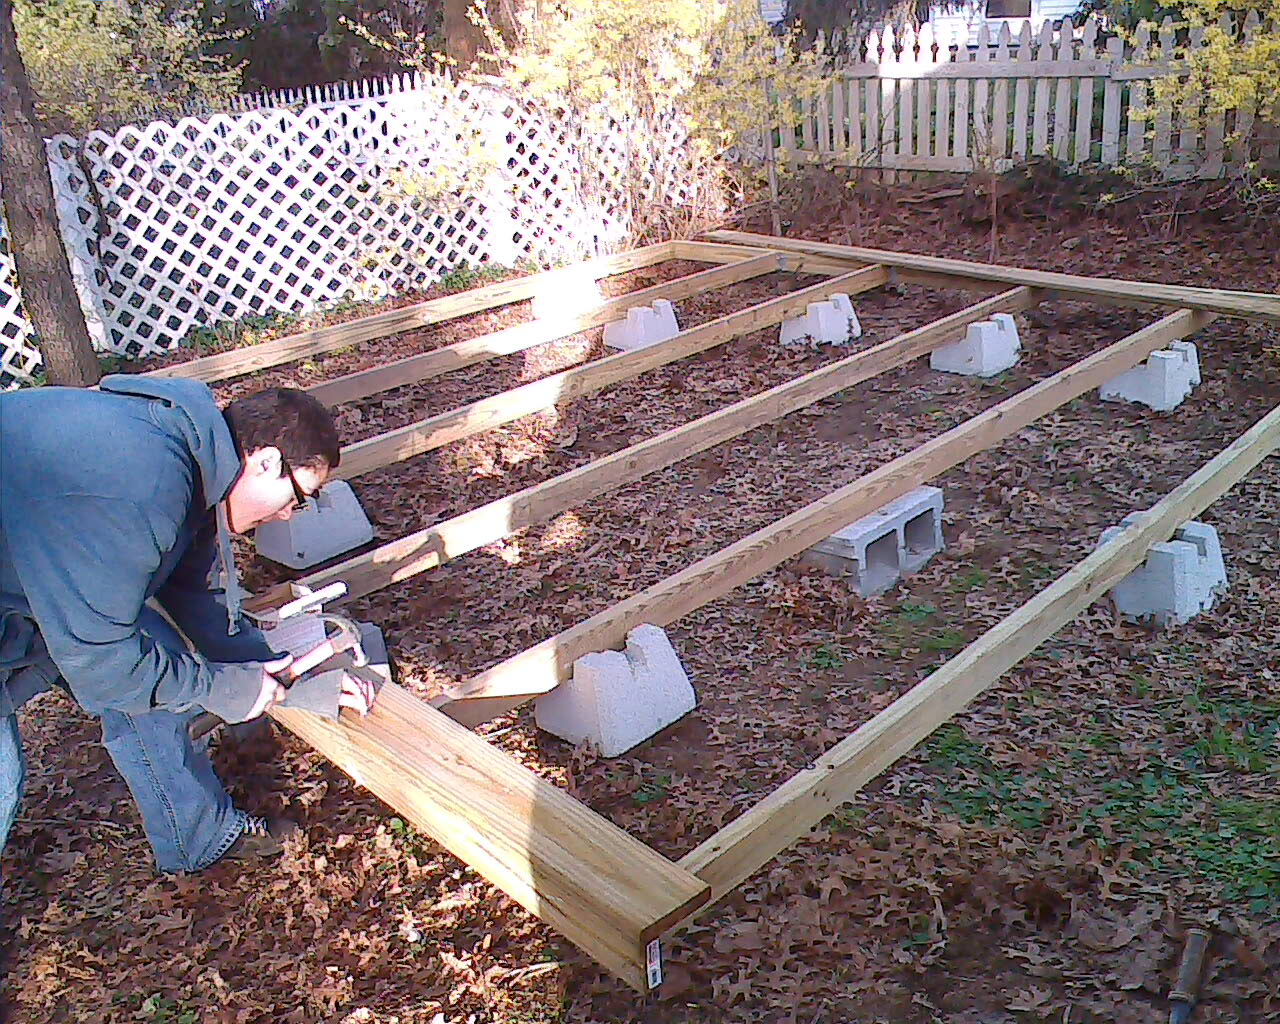 How To Build A Floating Deck 3 Steps, How To Build A Floating Deck Around An Above Ground Pool